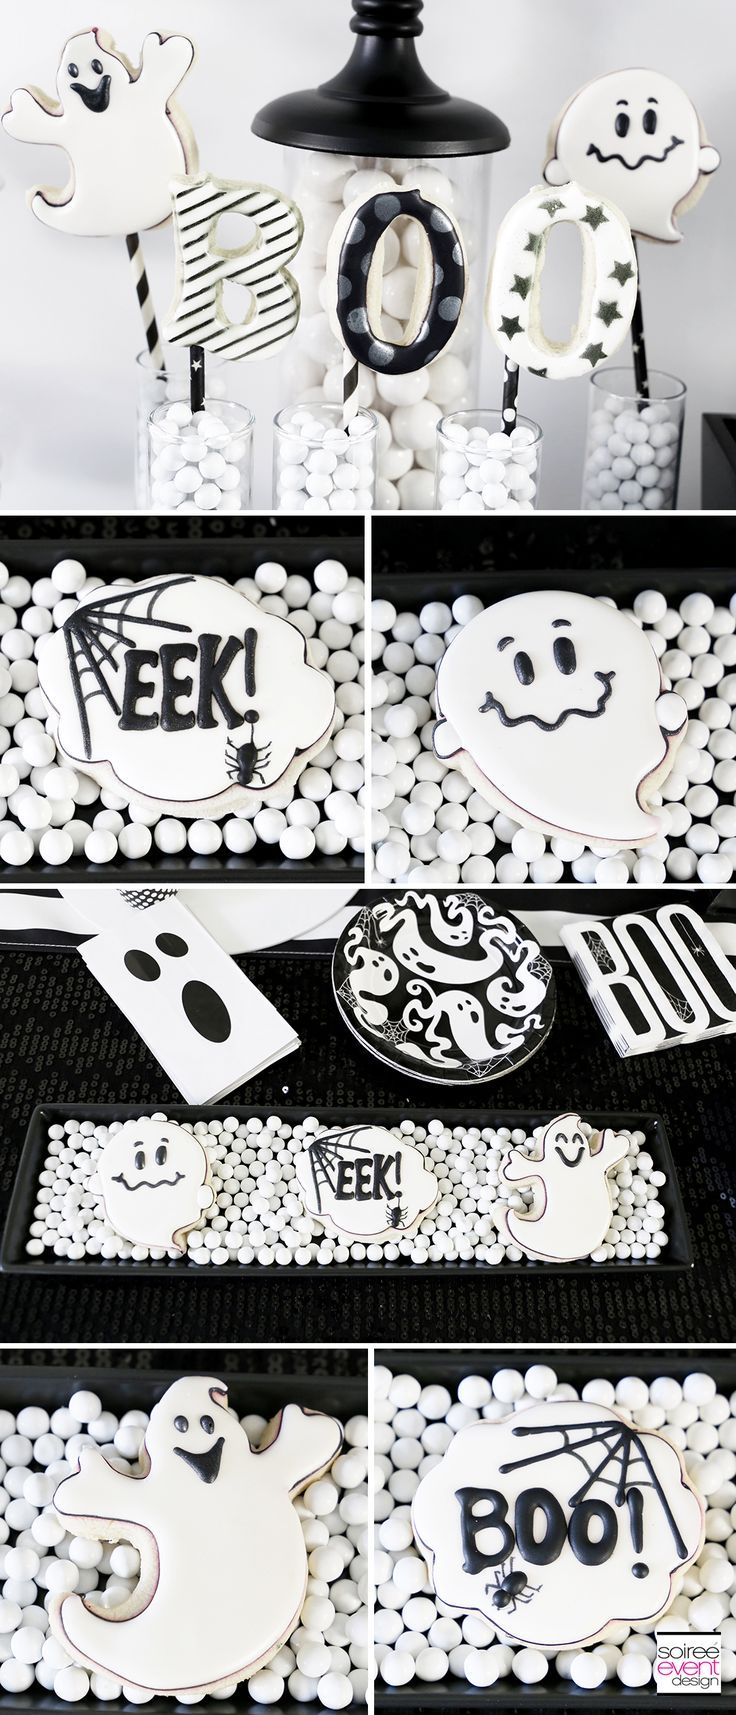 Boo Black And White Halloween Party White Halloween Party Birthday Halloween Party Halloween Party